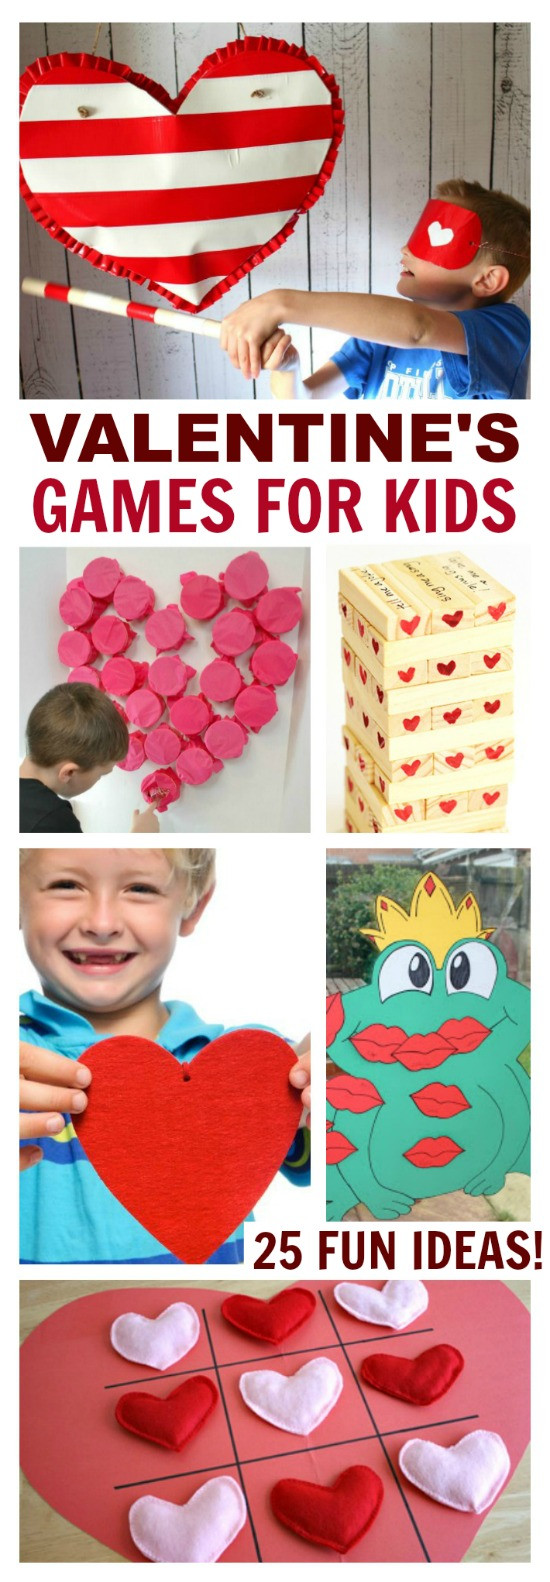 Valentine Party Games For Kids  Valentine s Games for Kids